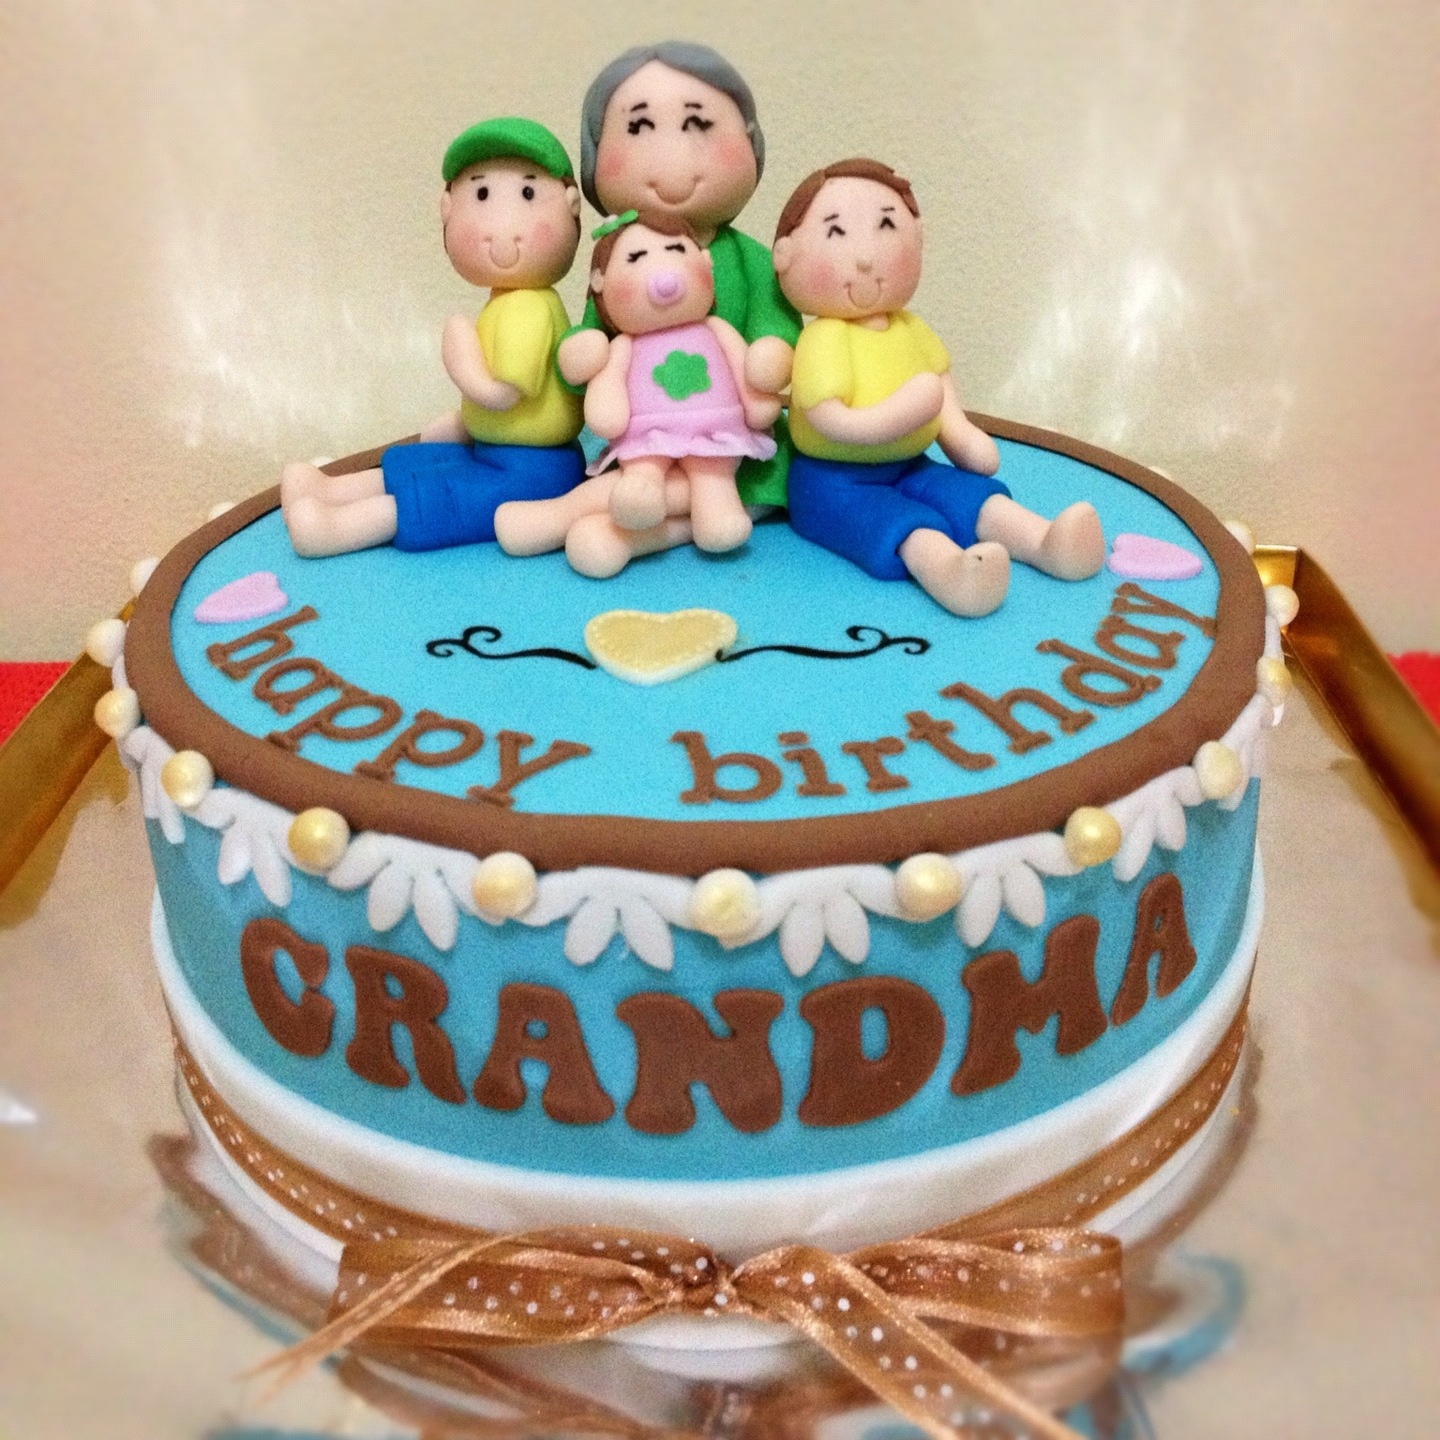 Grandma Birthday Cake